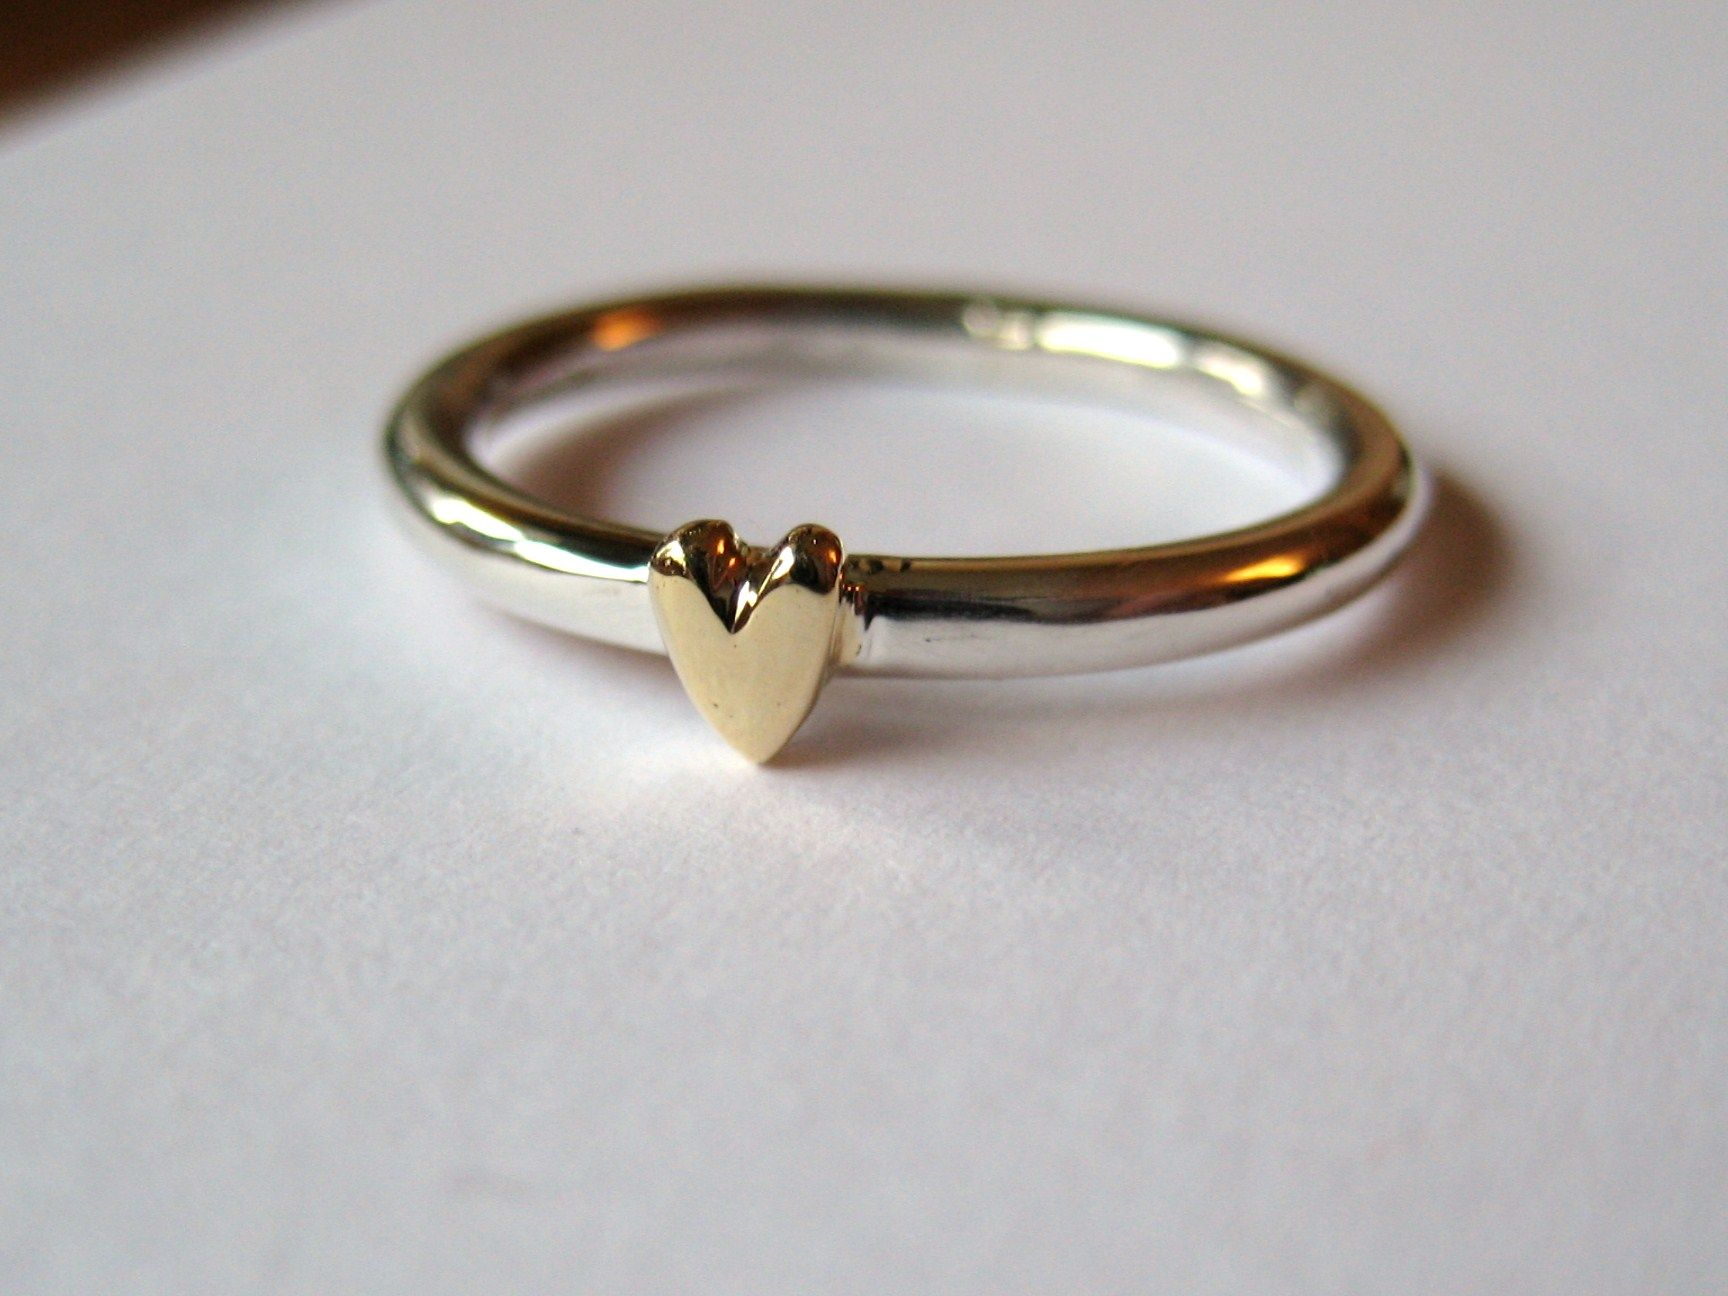 Cool Simple Ring Design Ideas Images - Jewelry Collection Ideas ...